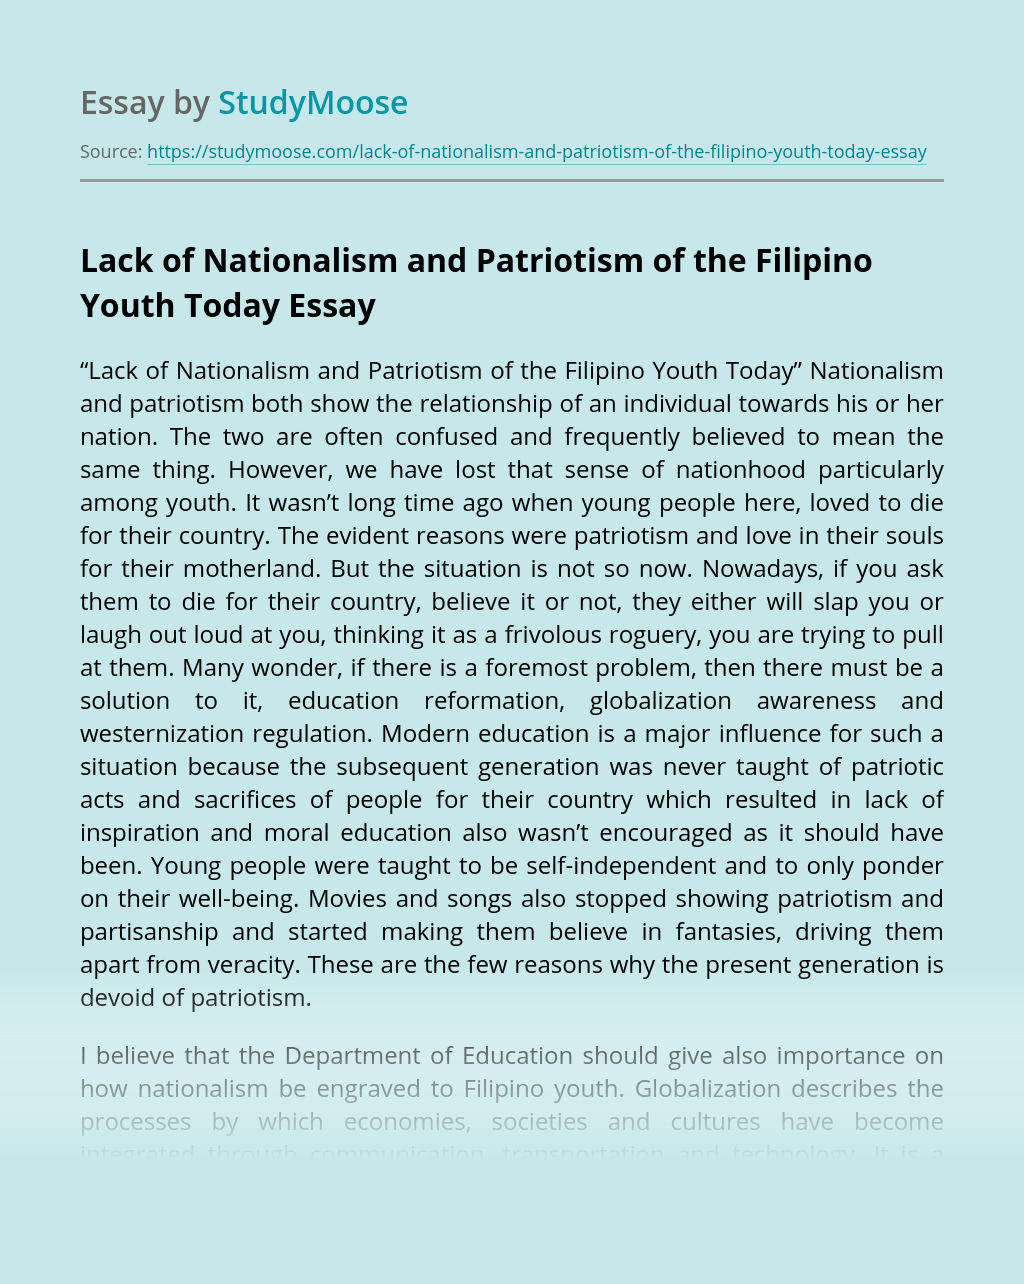 Lack of Nationalism and Patriotism of the Filipino Youth Today